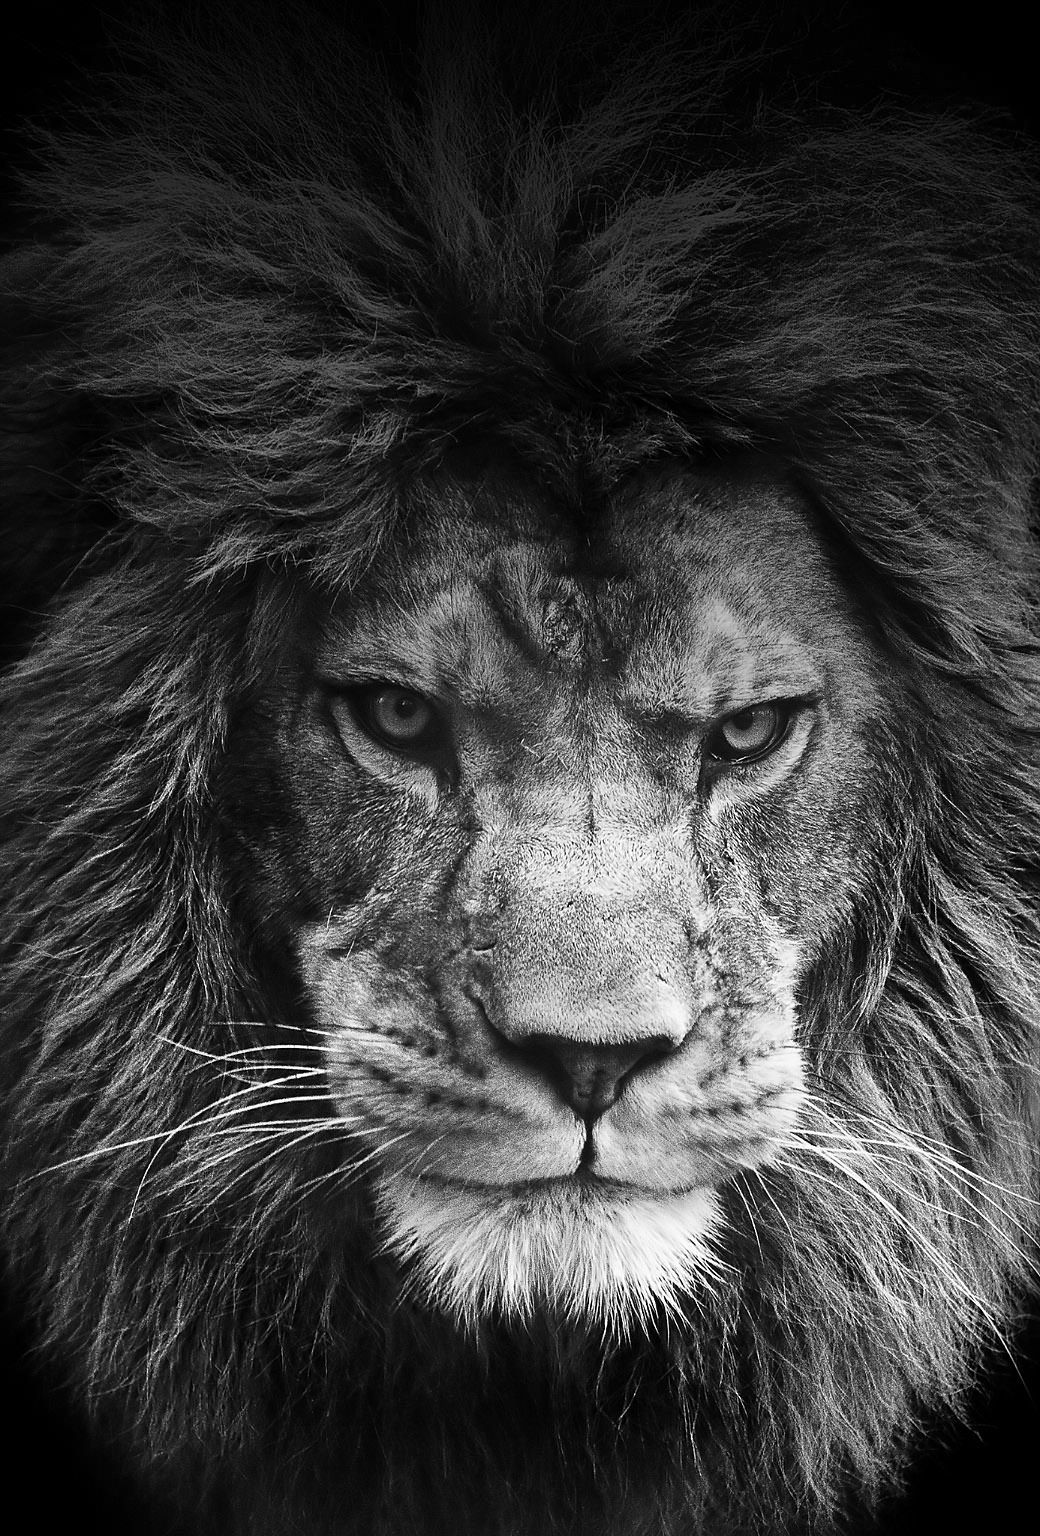 Lion black and white pesquisa google